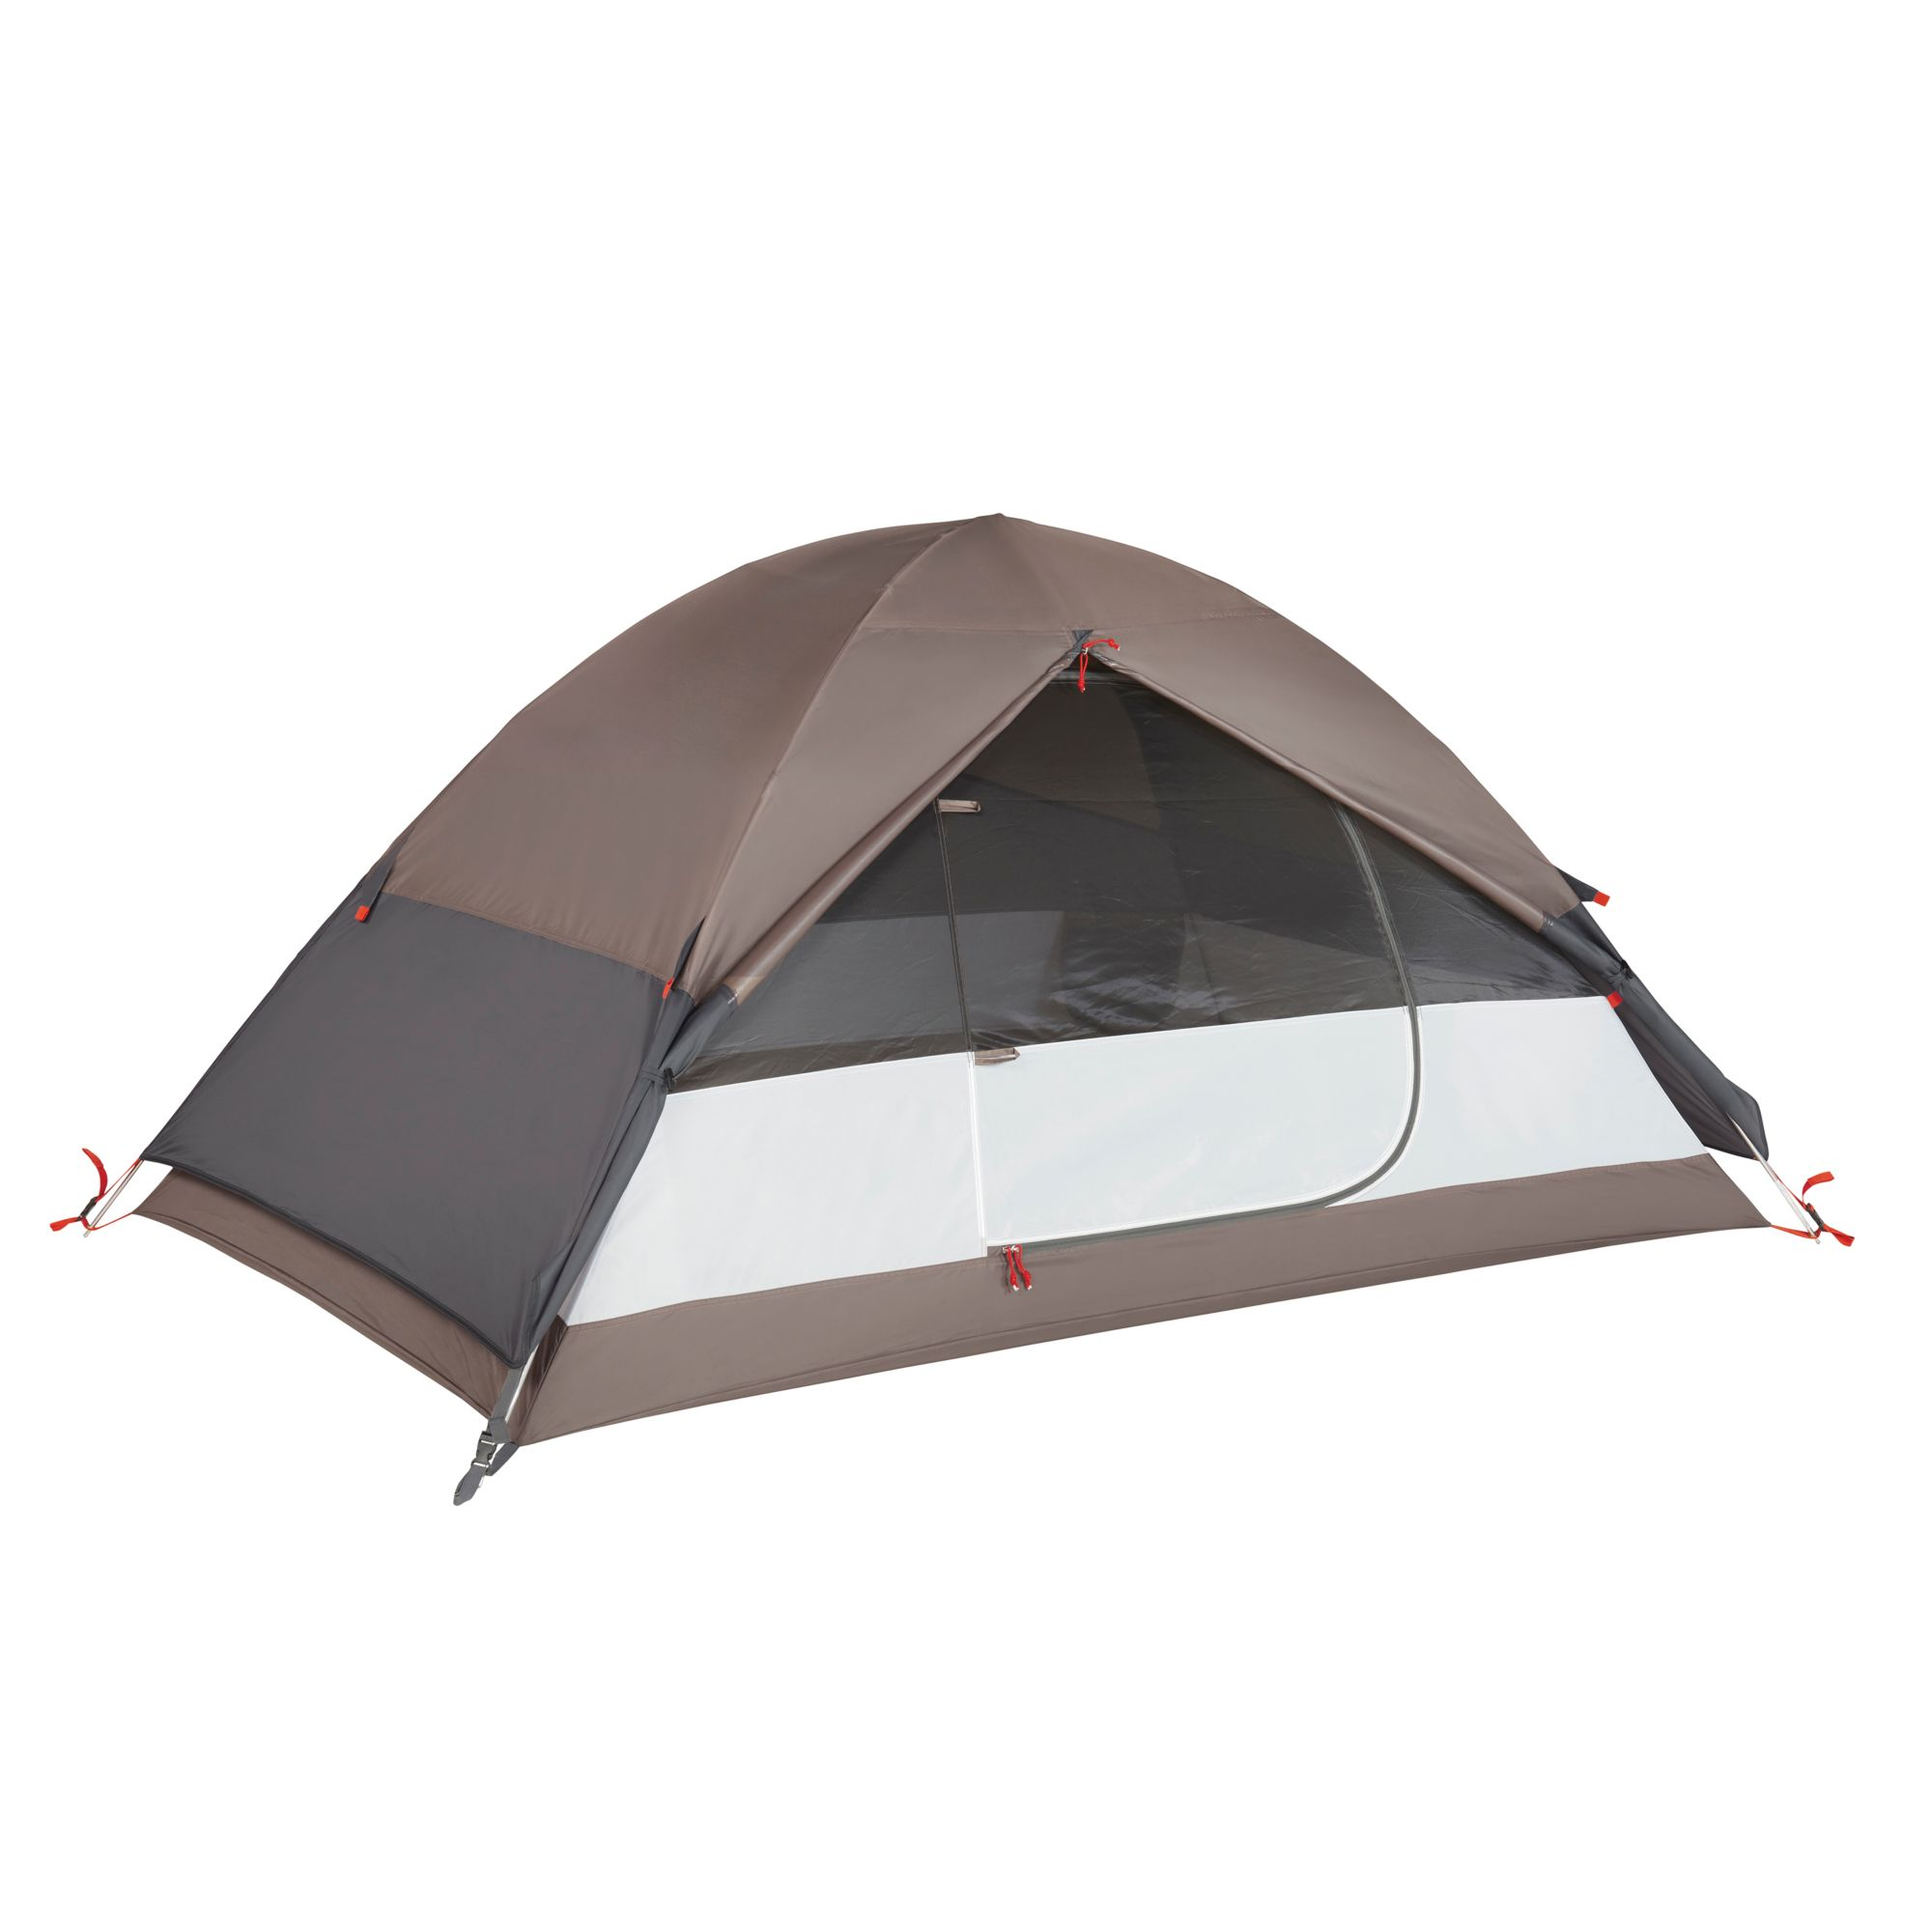 Product Image · Kelty Circuit 2 Person Tent  sc 1 st  DICKu0027S Sporting Goods & 2-3 Person Tents on Sale | Best Price Guarantee at DICKu0027S